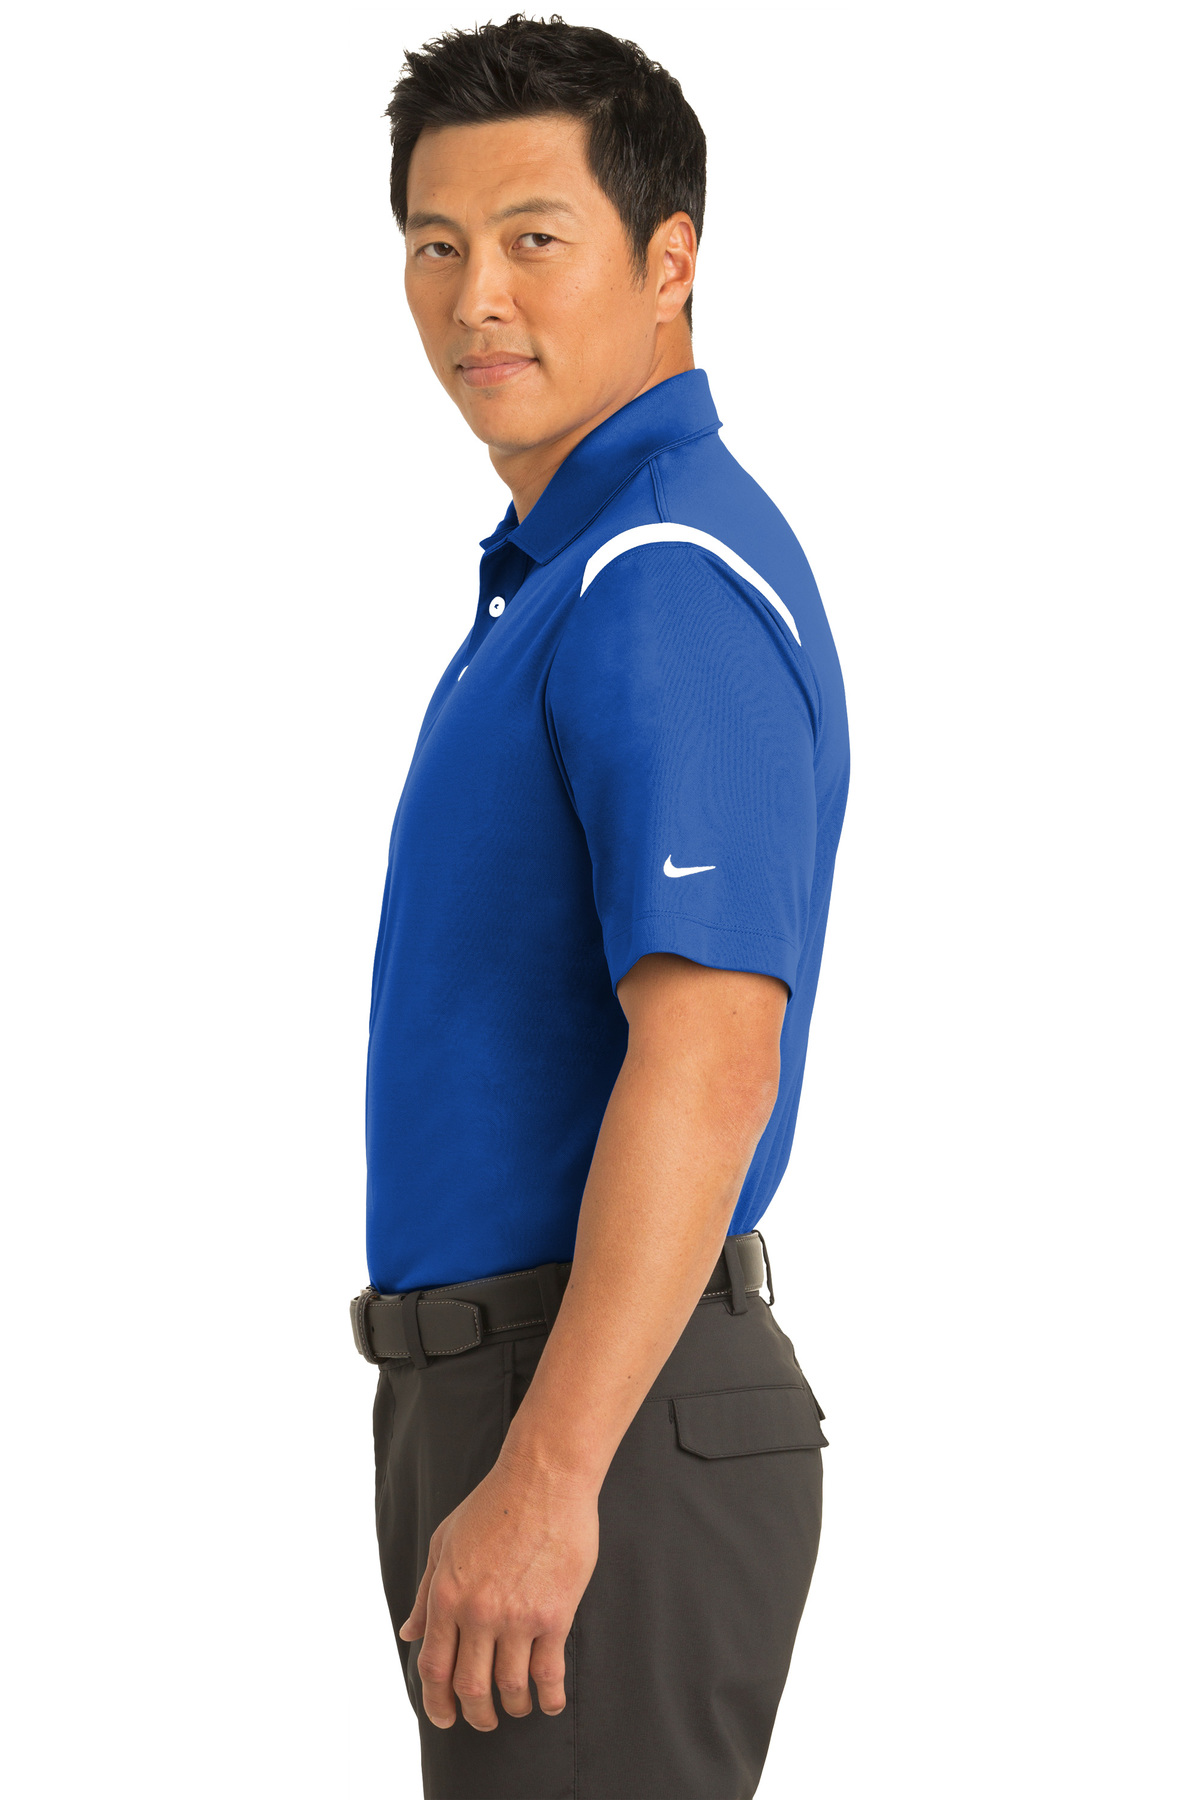 416603dd ... Nike Dri-FIT Shoulder Stripe Polo. A maximum of 8 logos have been  uploaded. Please remove a logo from My Logos to continue